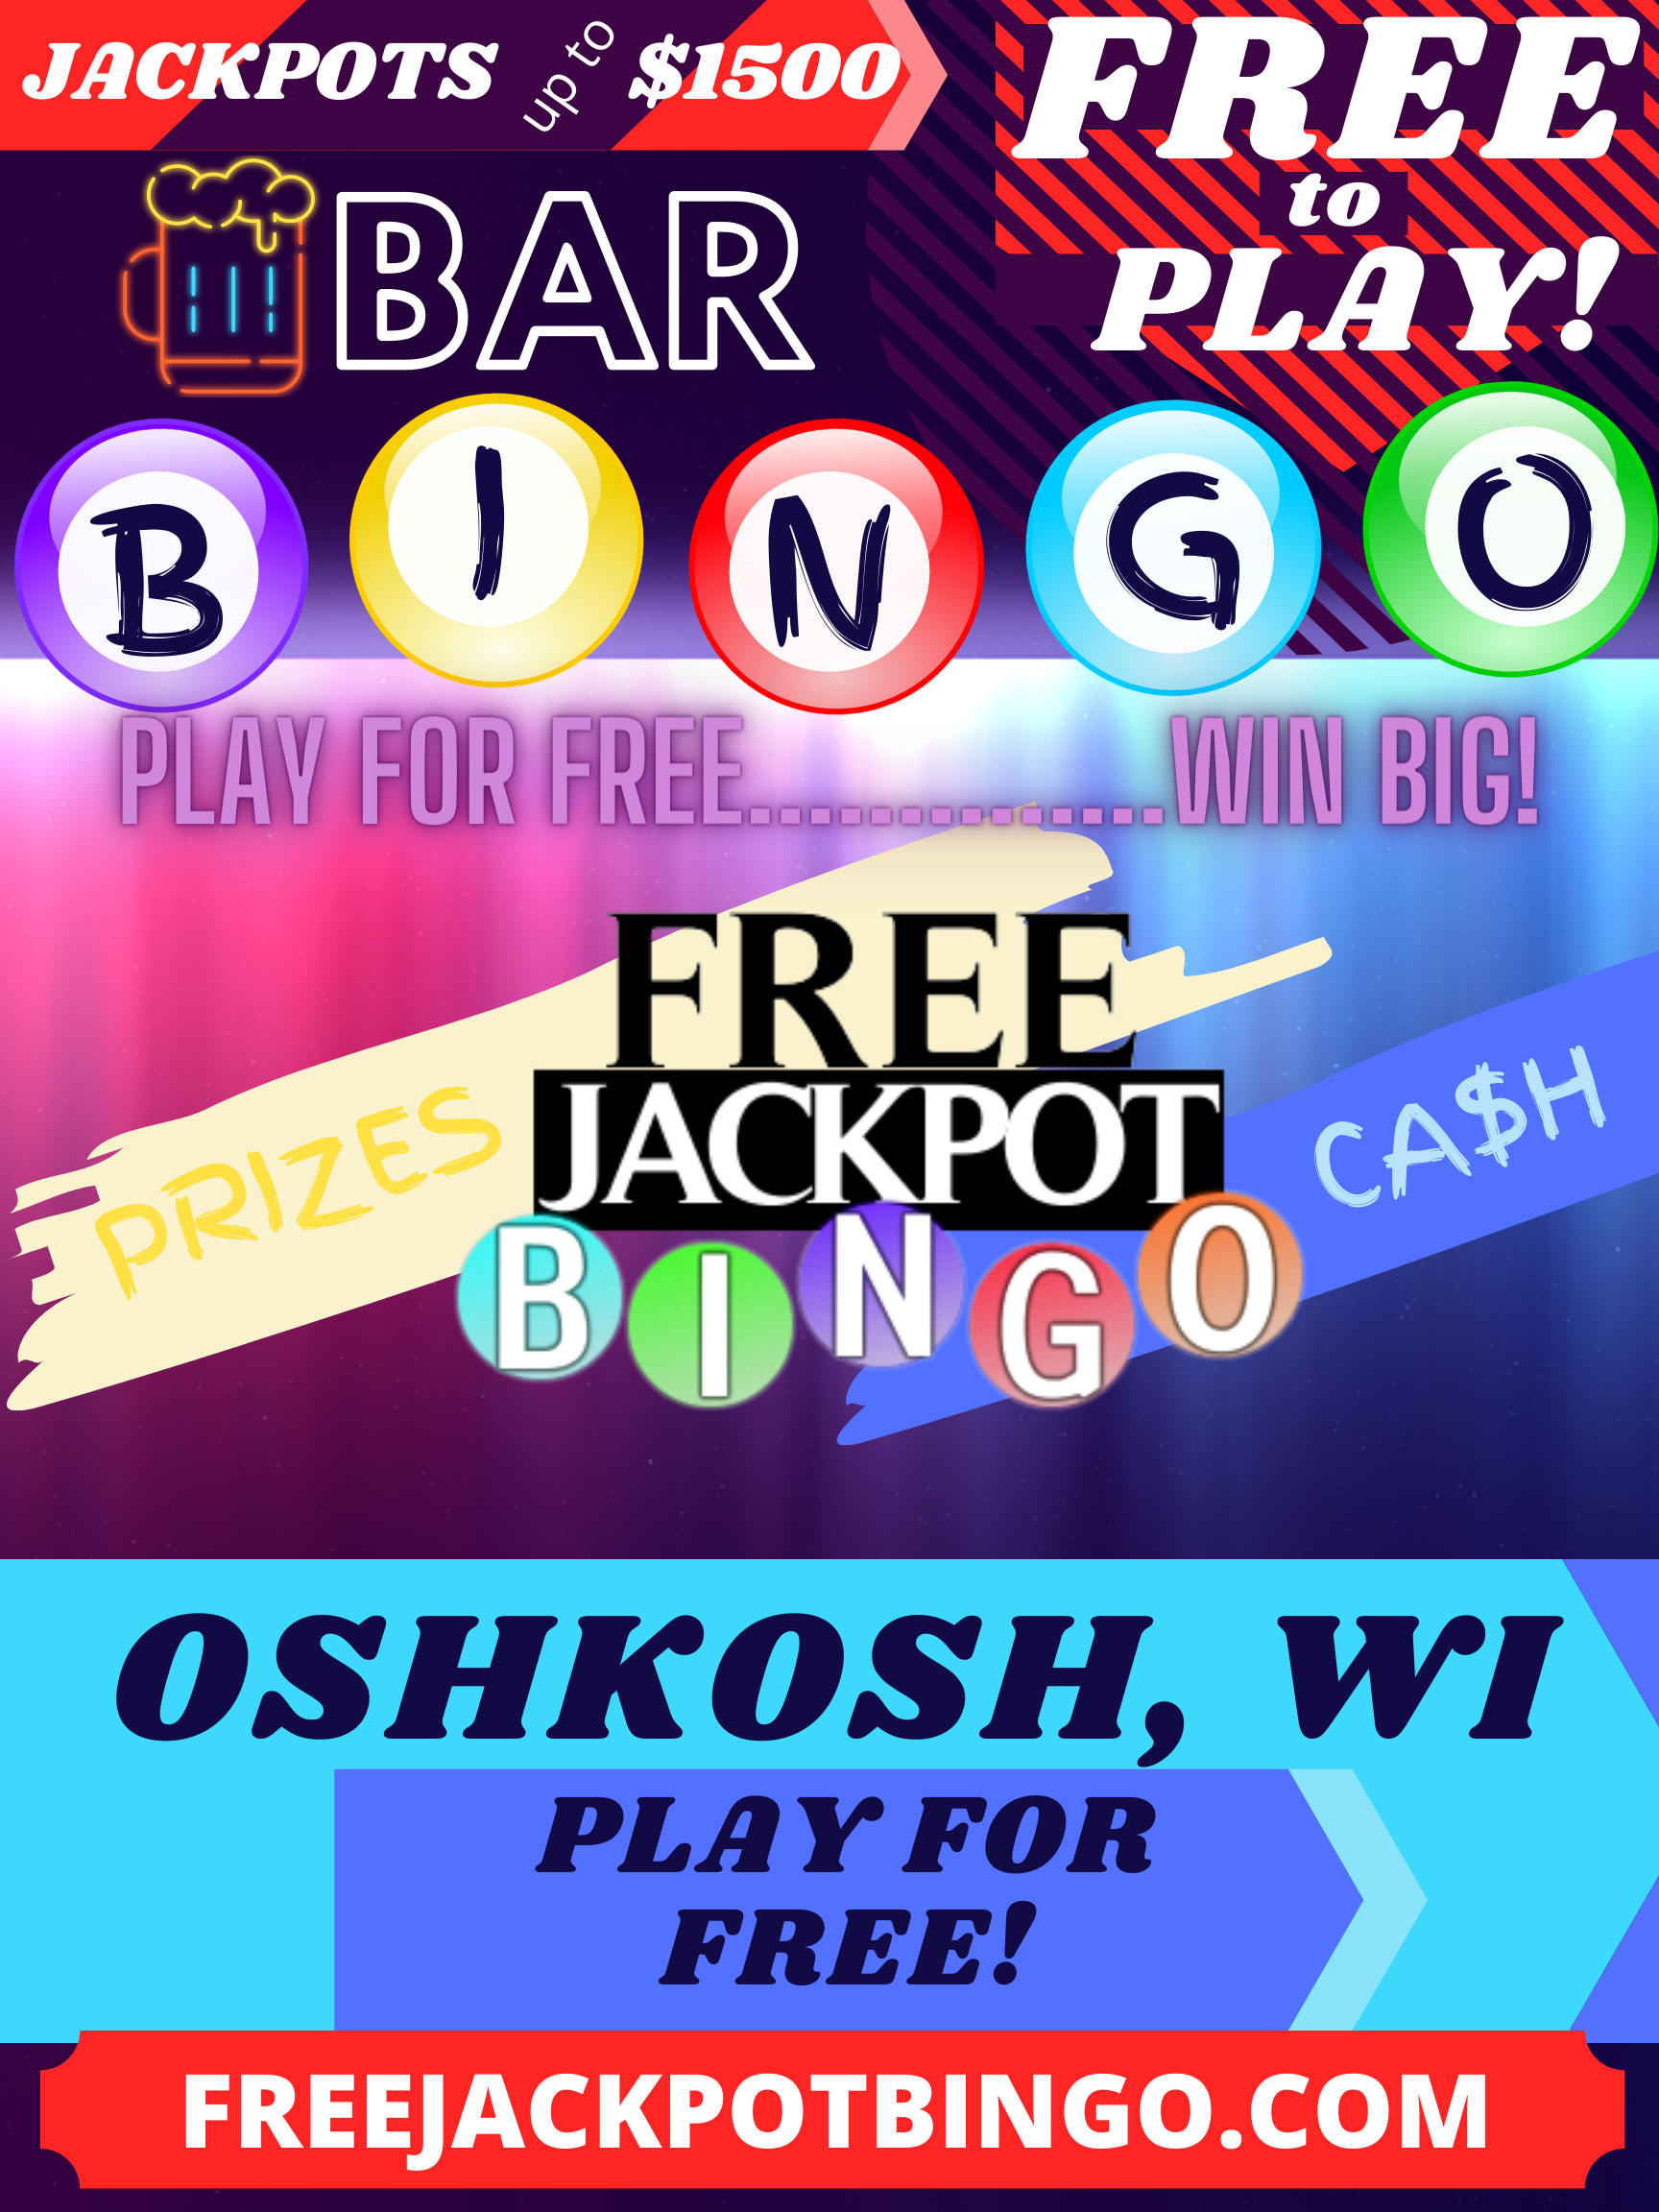 Play Bingo For Free In Oshkosh